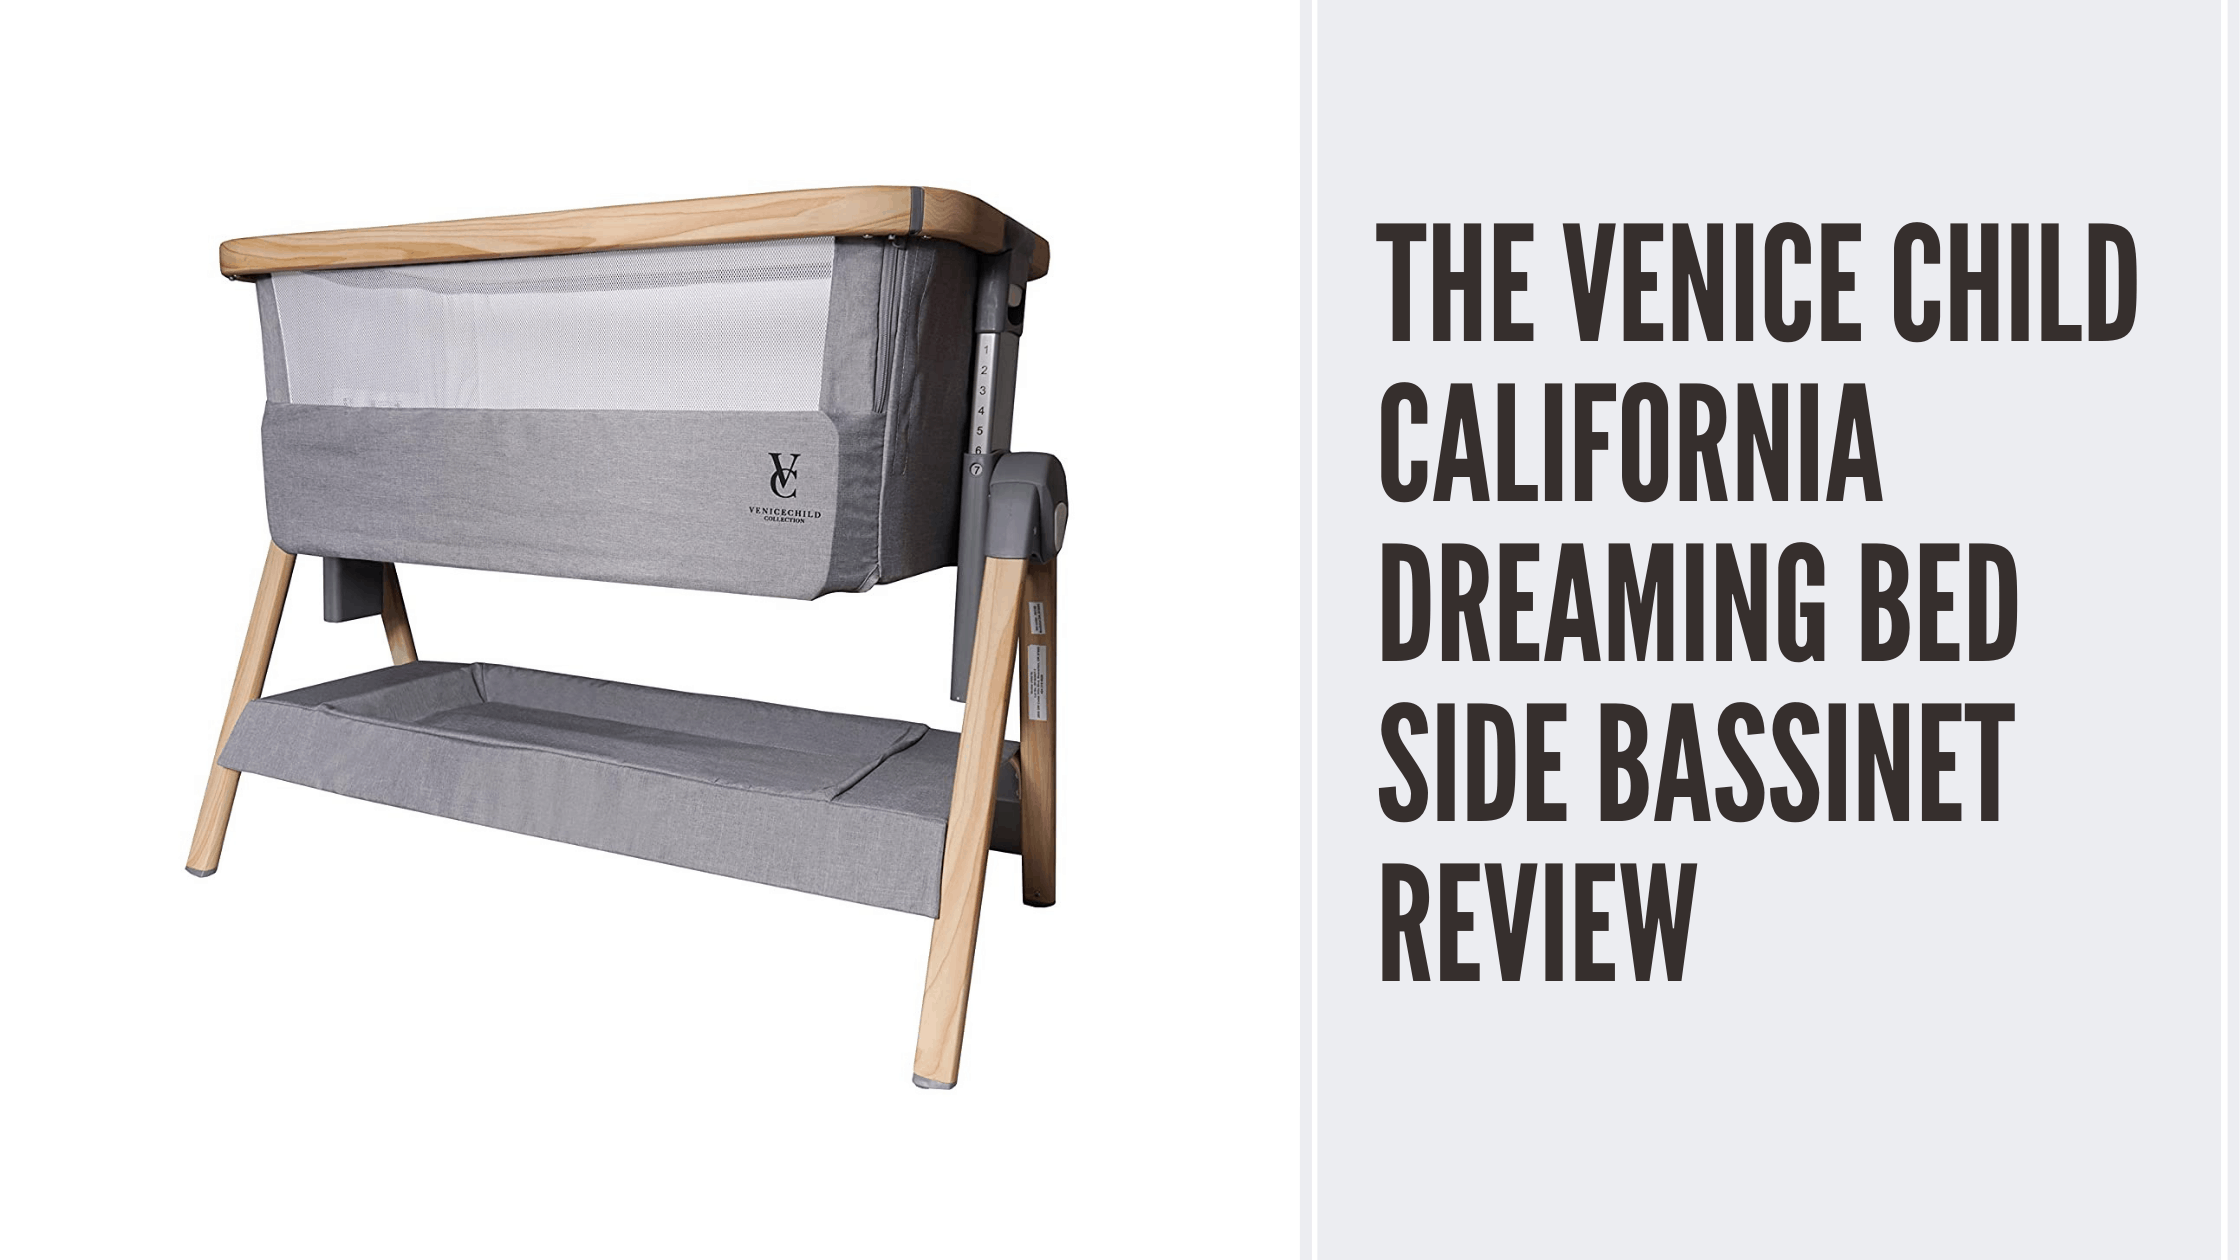 Venice Child California Dreaming Bedside Bassinet